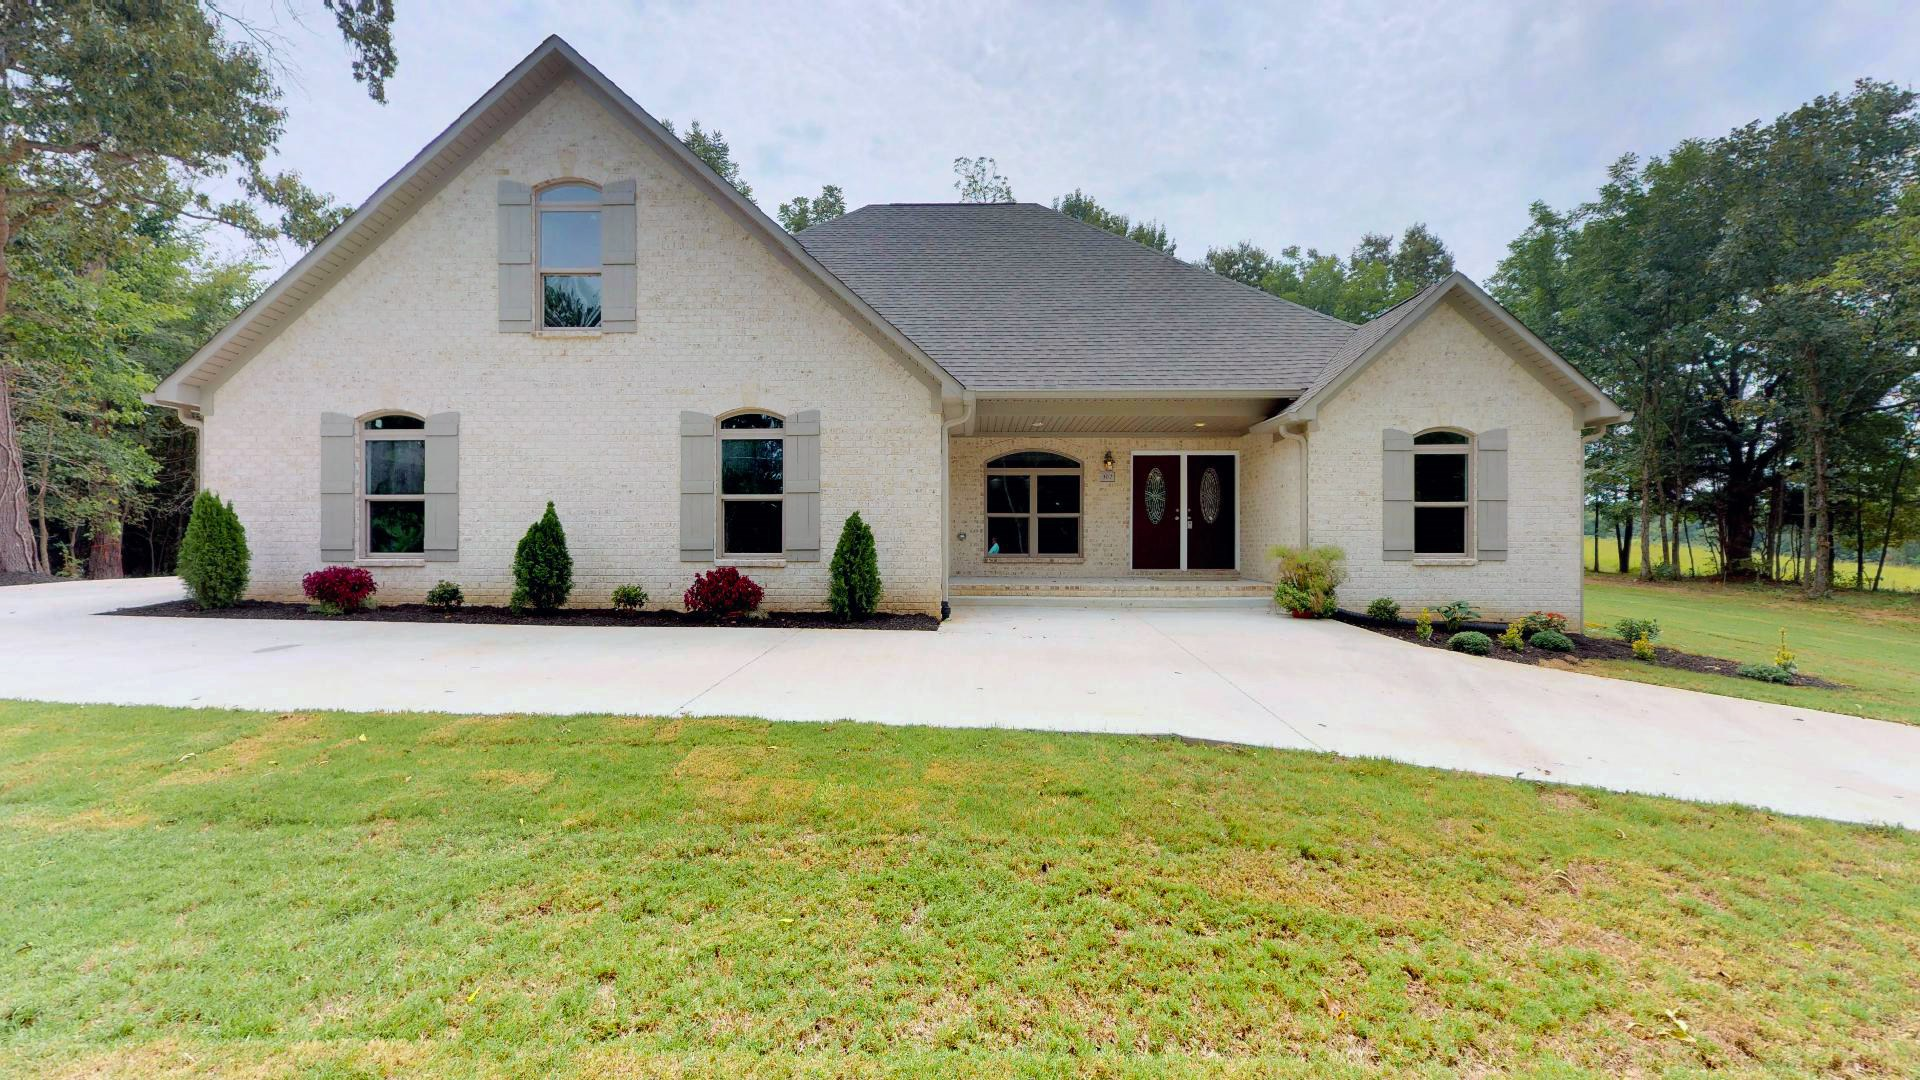 New Construction For Sale in Medina School District